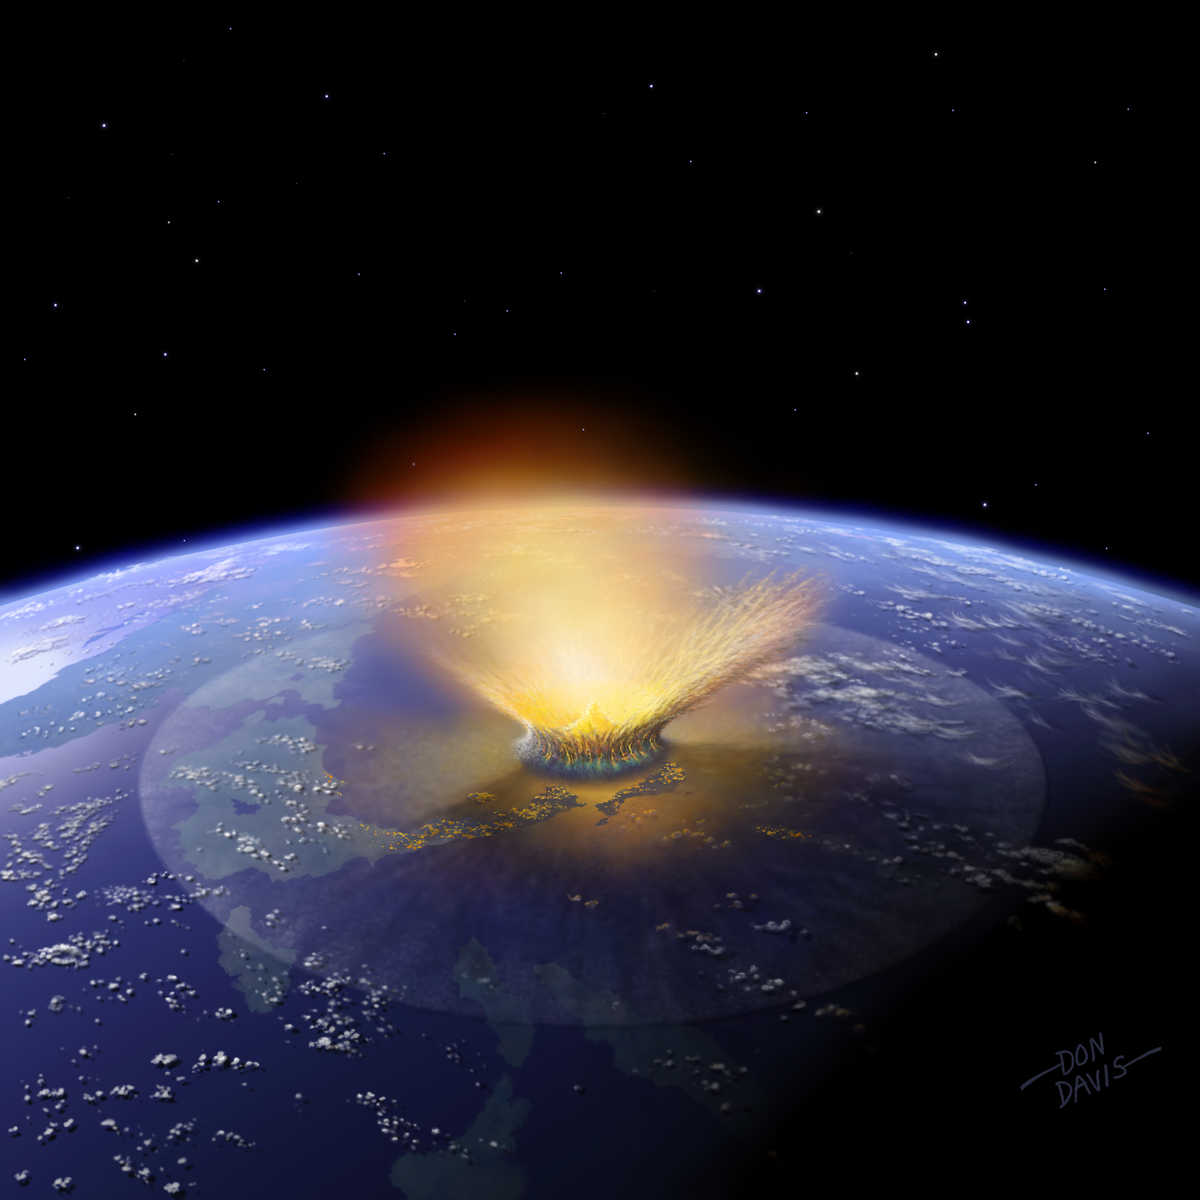 This image shows an artist's depiction of a 10-kilometer (6-mile) diameter asteroid striking the Earth.